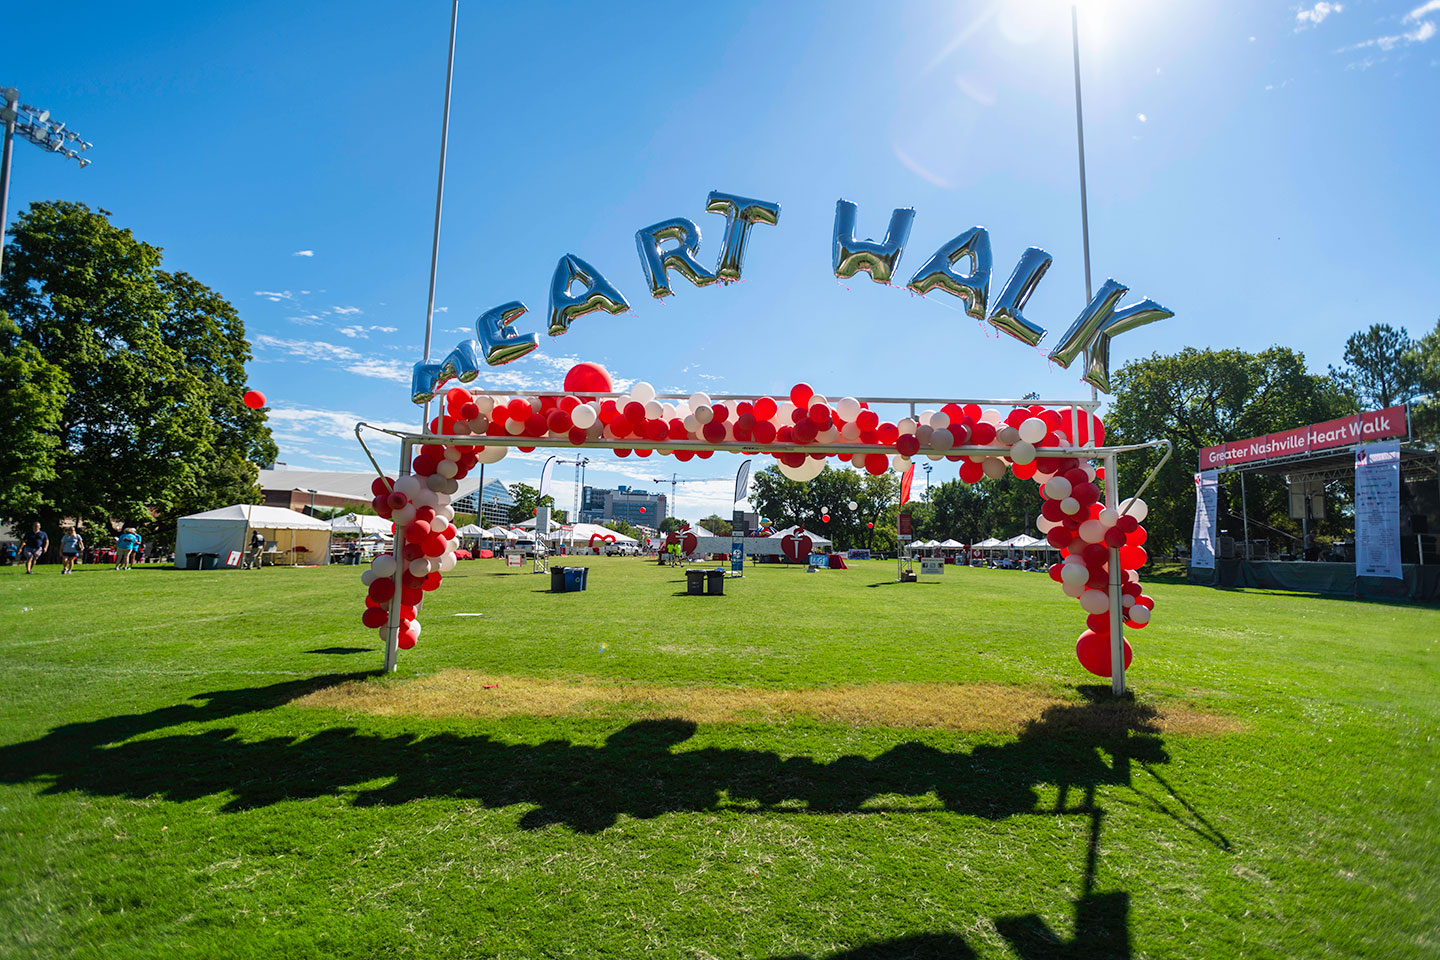 Heart Walk Balloon Entrance